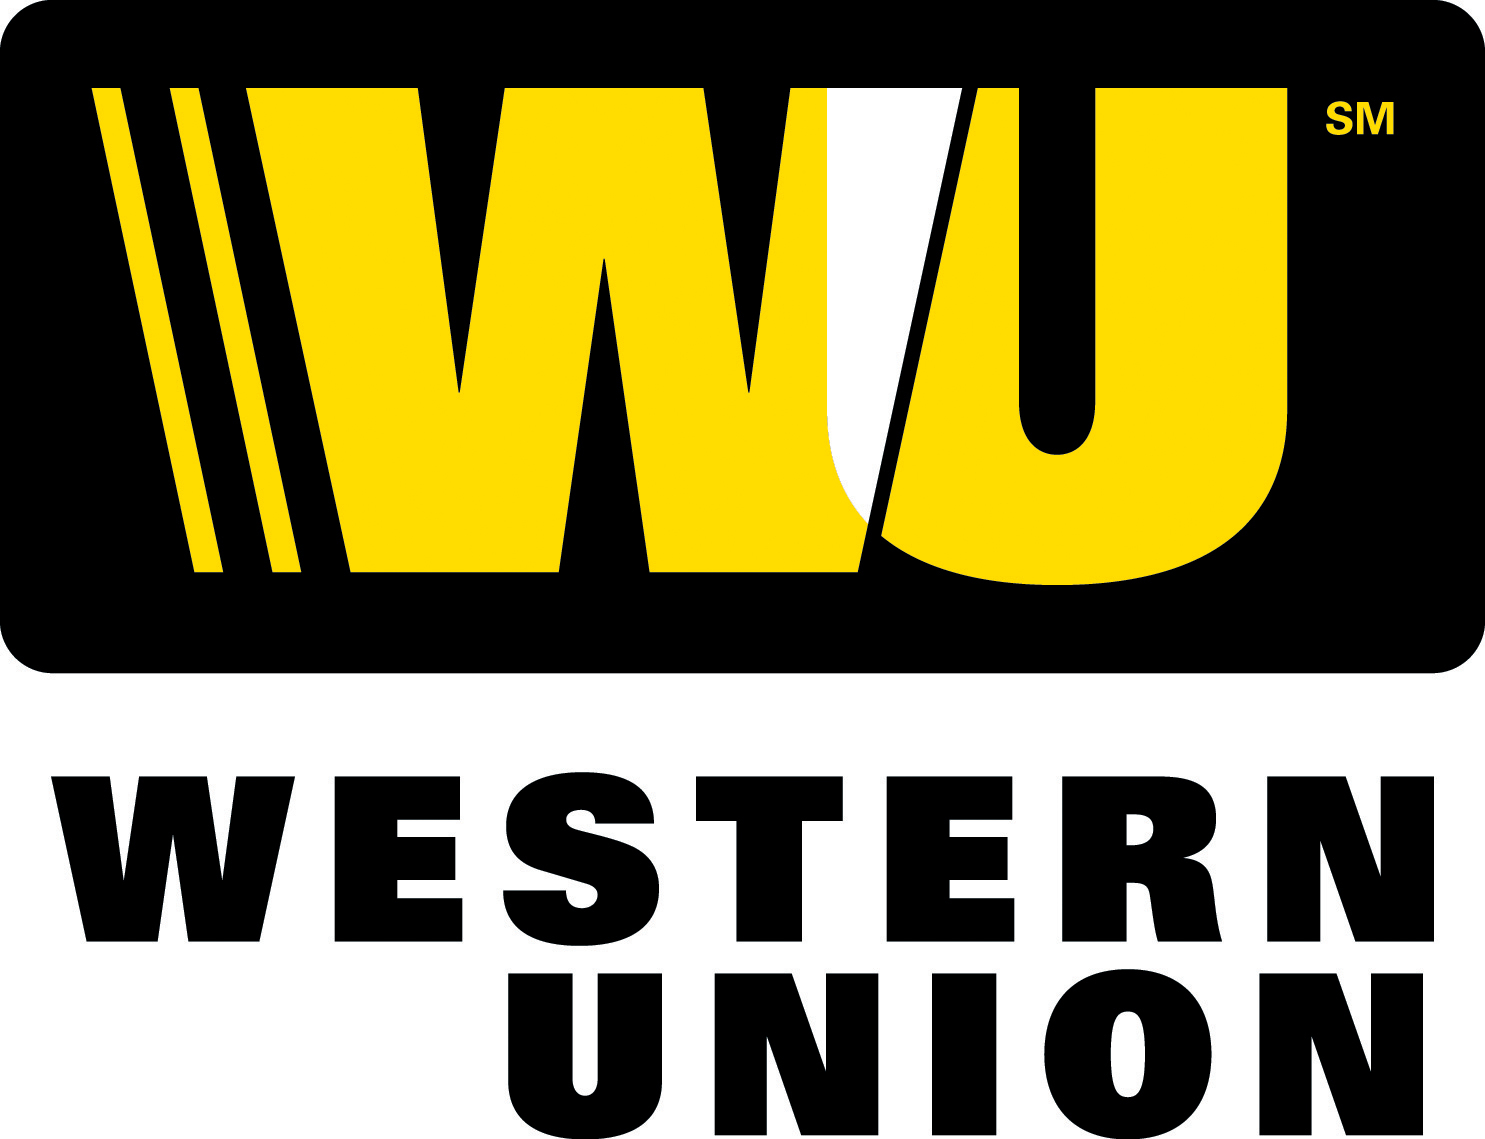 Western Union Images